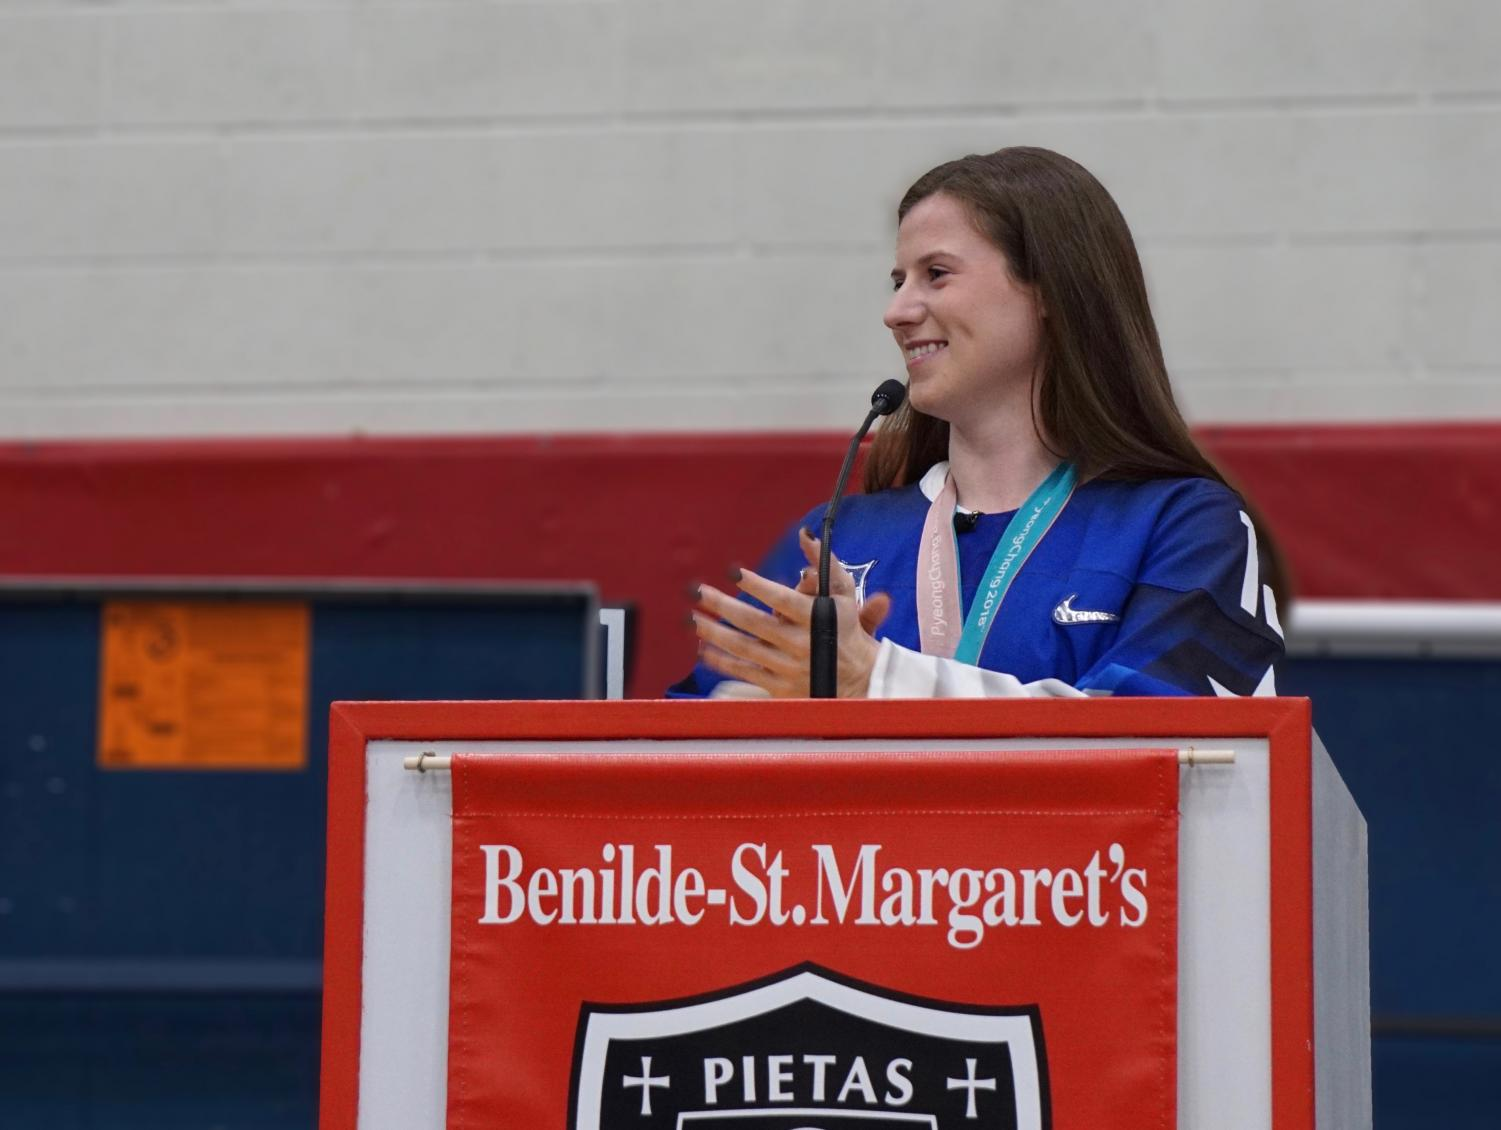 Alum Kelly Pannek returned to BSM to be recognized for her success in the 2018 Olympics. She played a key role in the success of the U.S. Women's  National Hockey team.